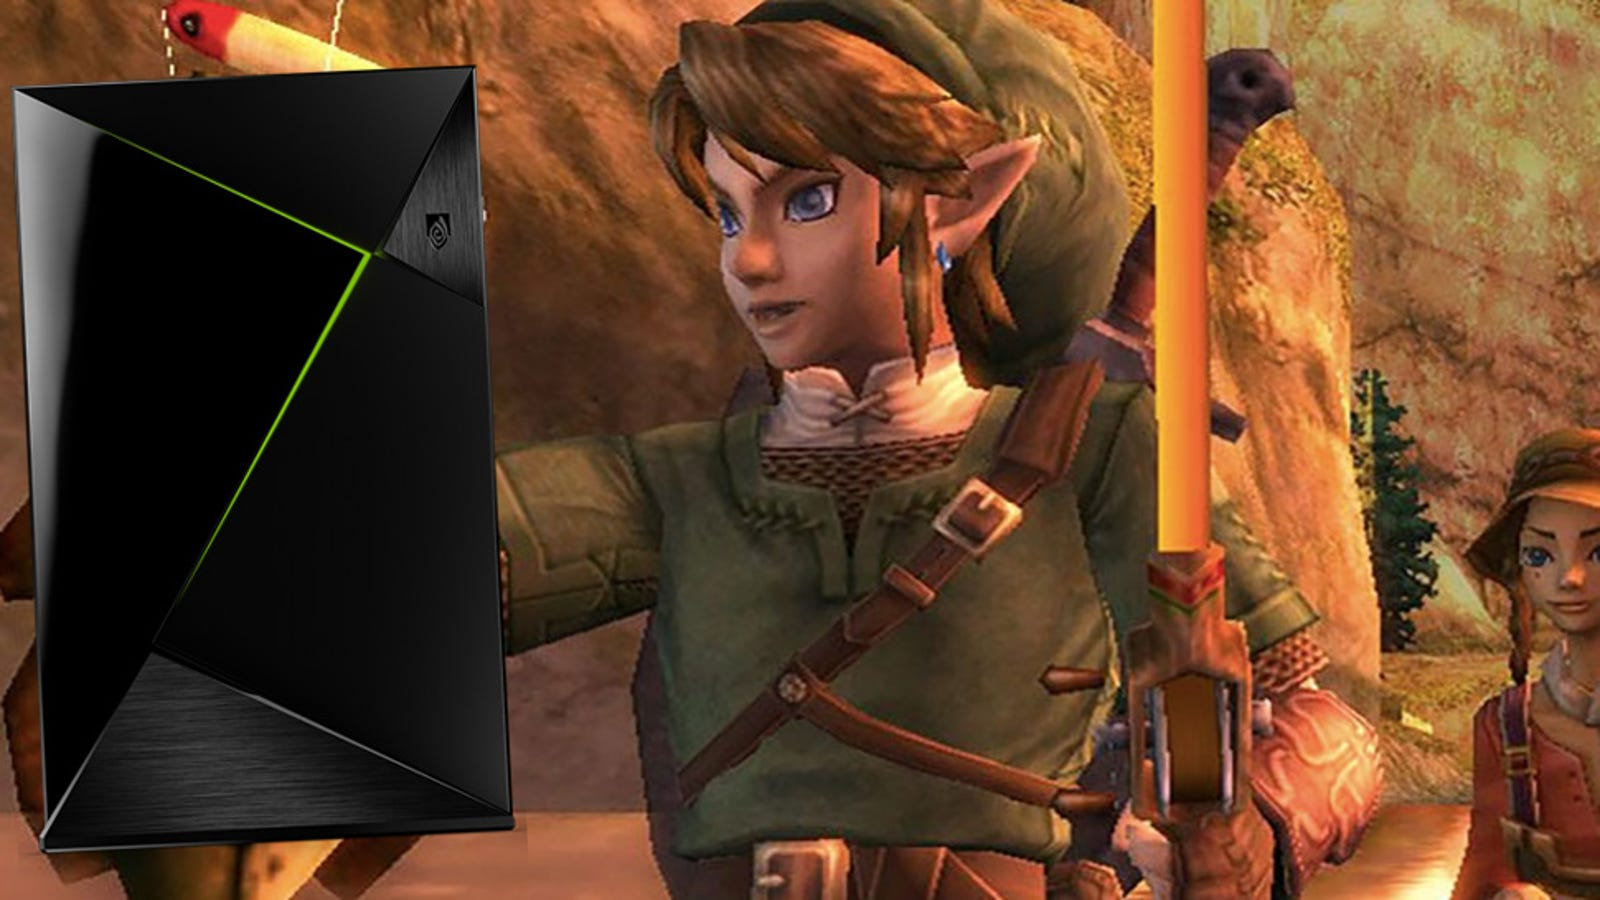 Gorgeous Nintendo Games Are Coming to Nvidia Shield, But Not In the